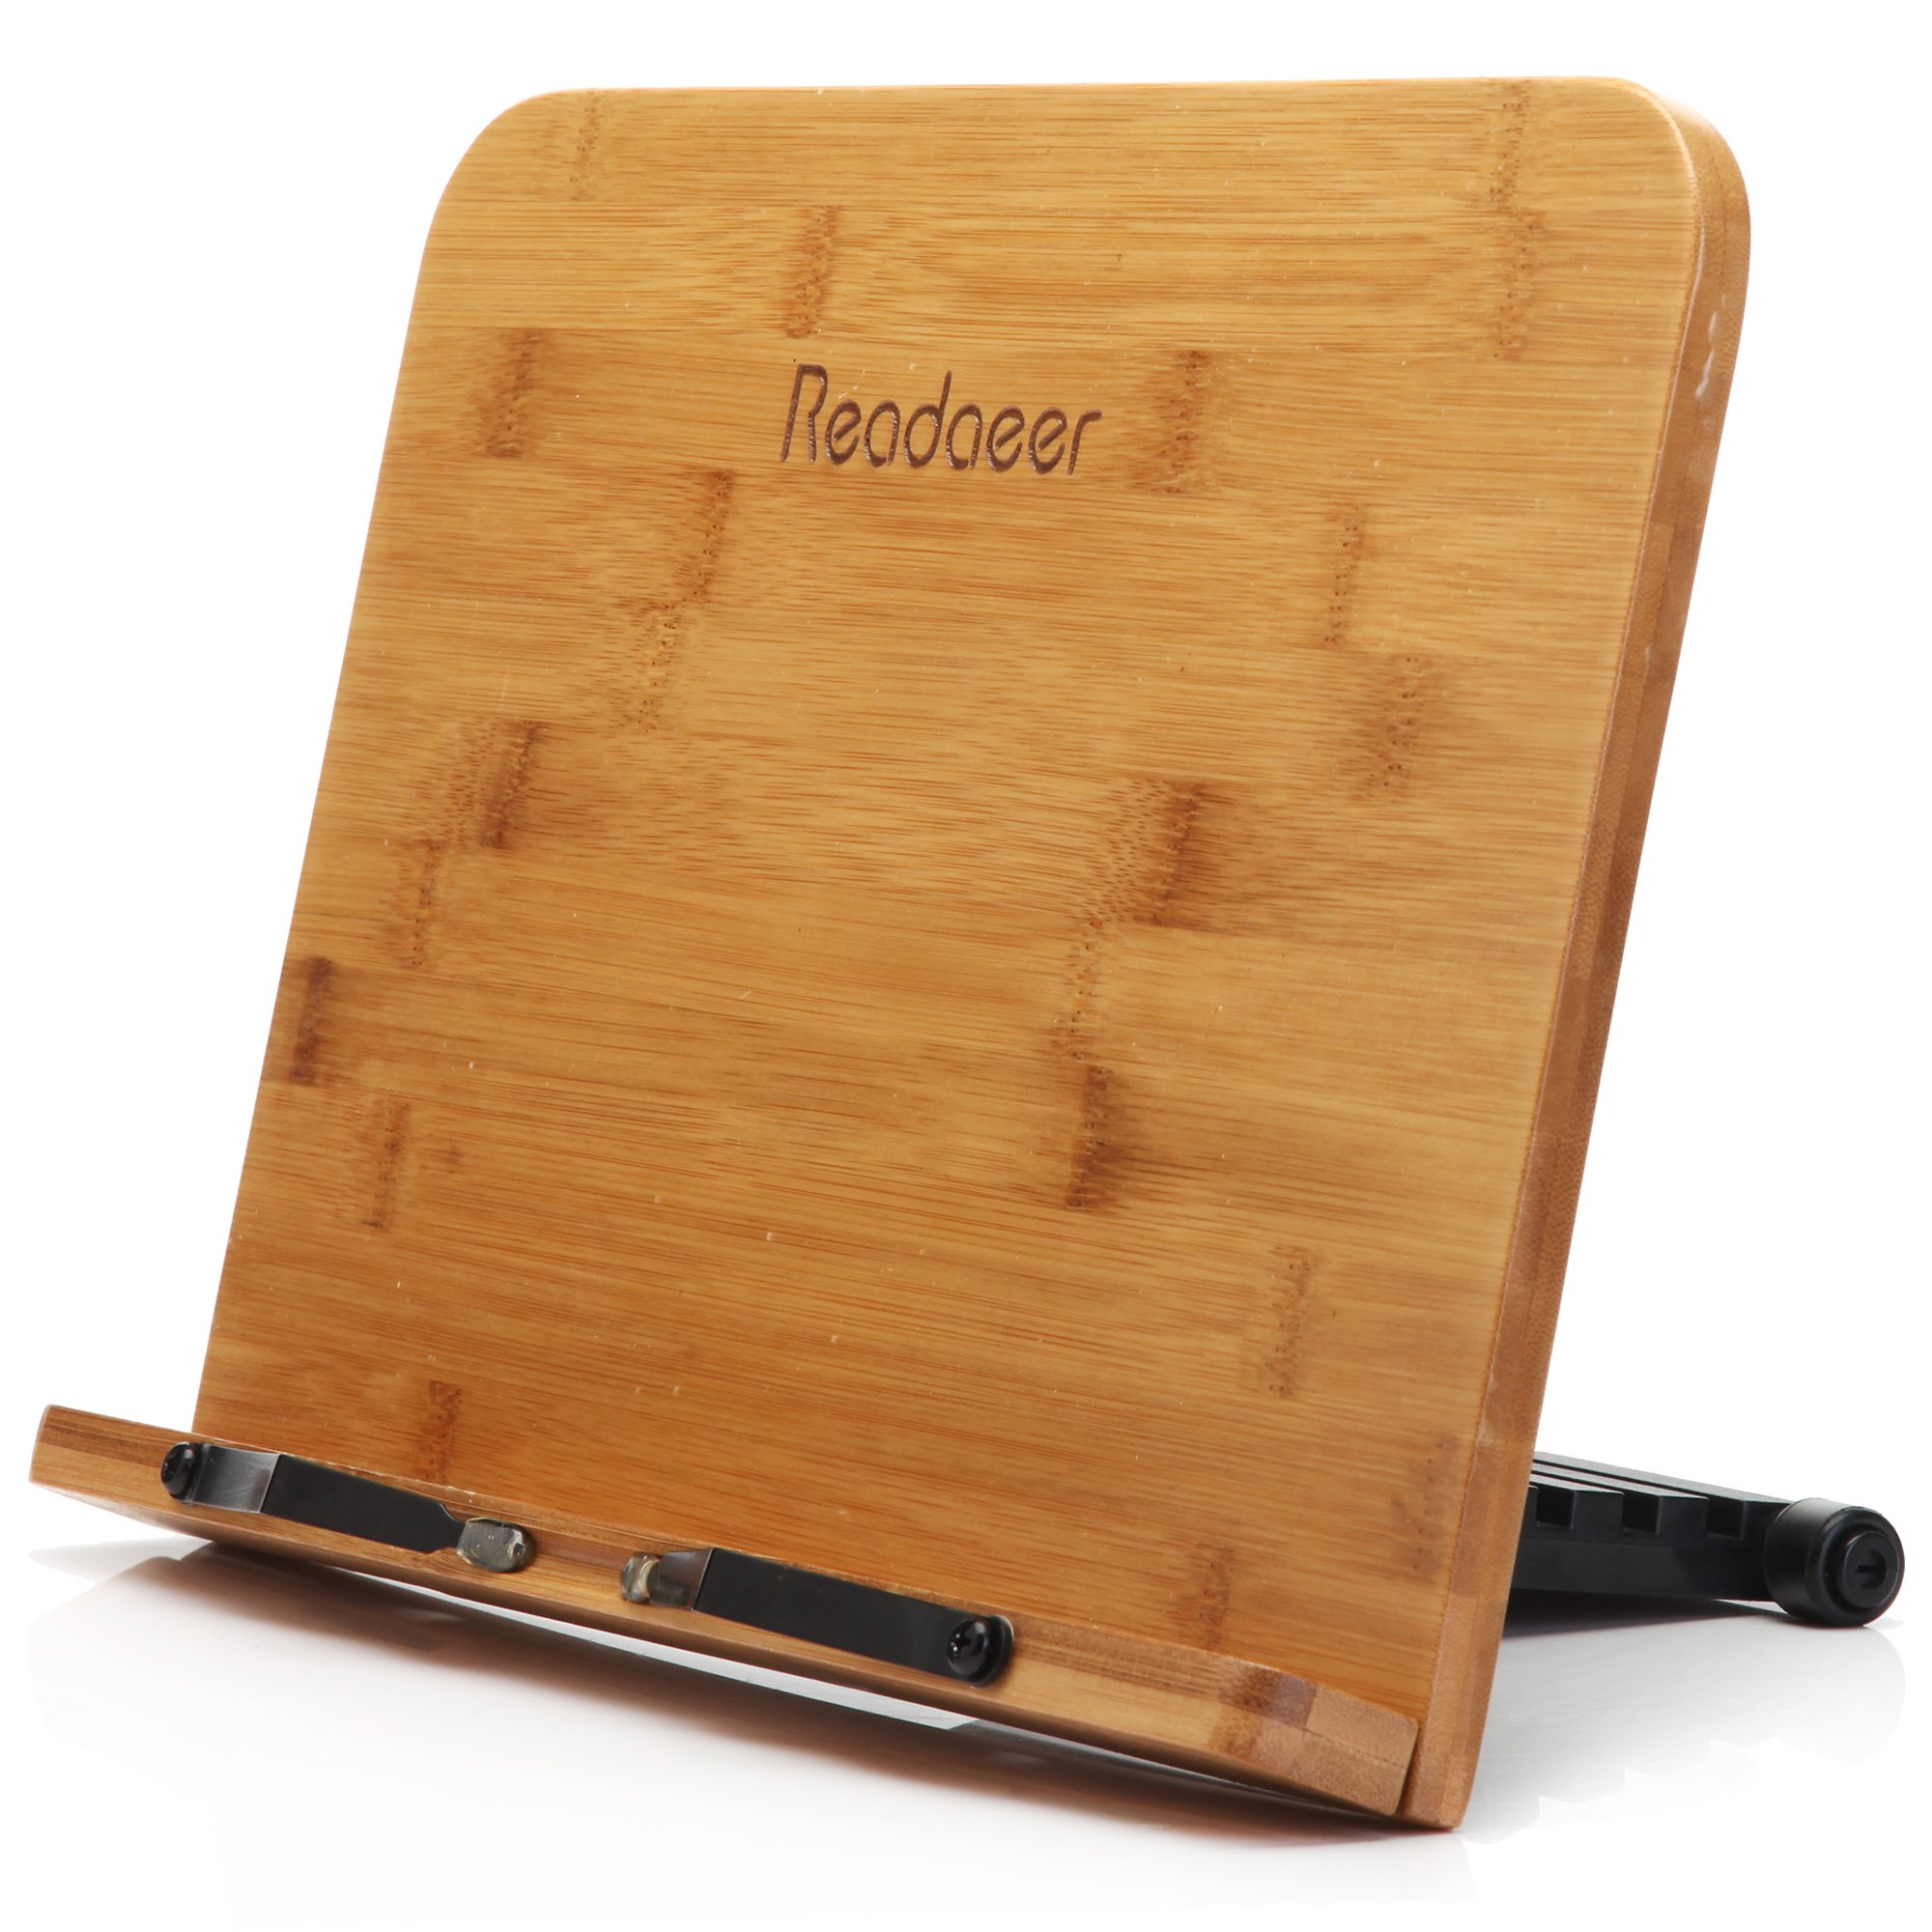 Reodoeer BamBoo Reading Rest Cook Book Document Stand Holder Bookrest by MOODAEER